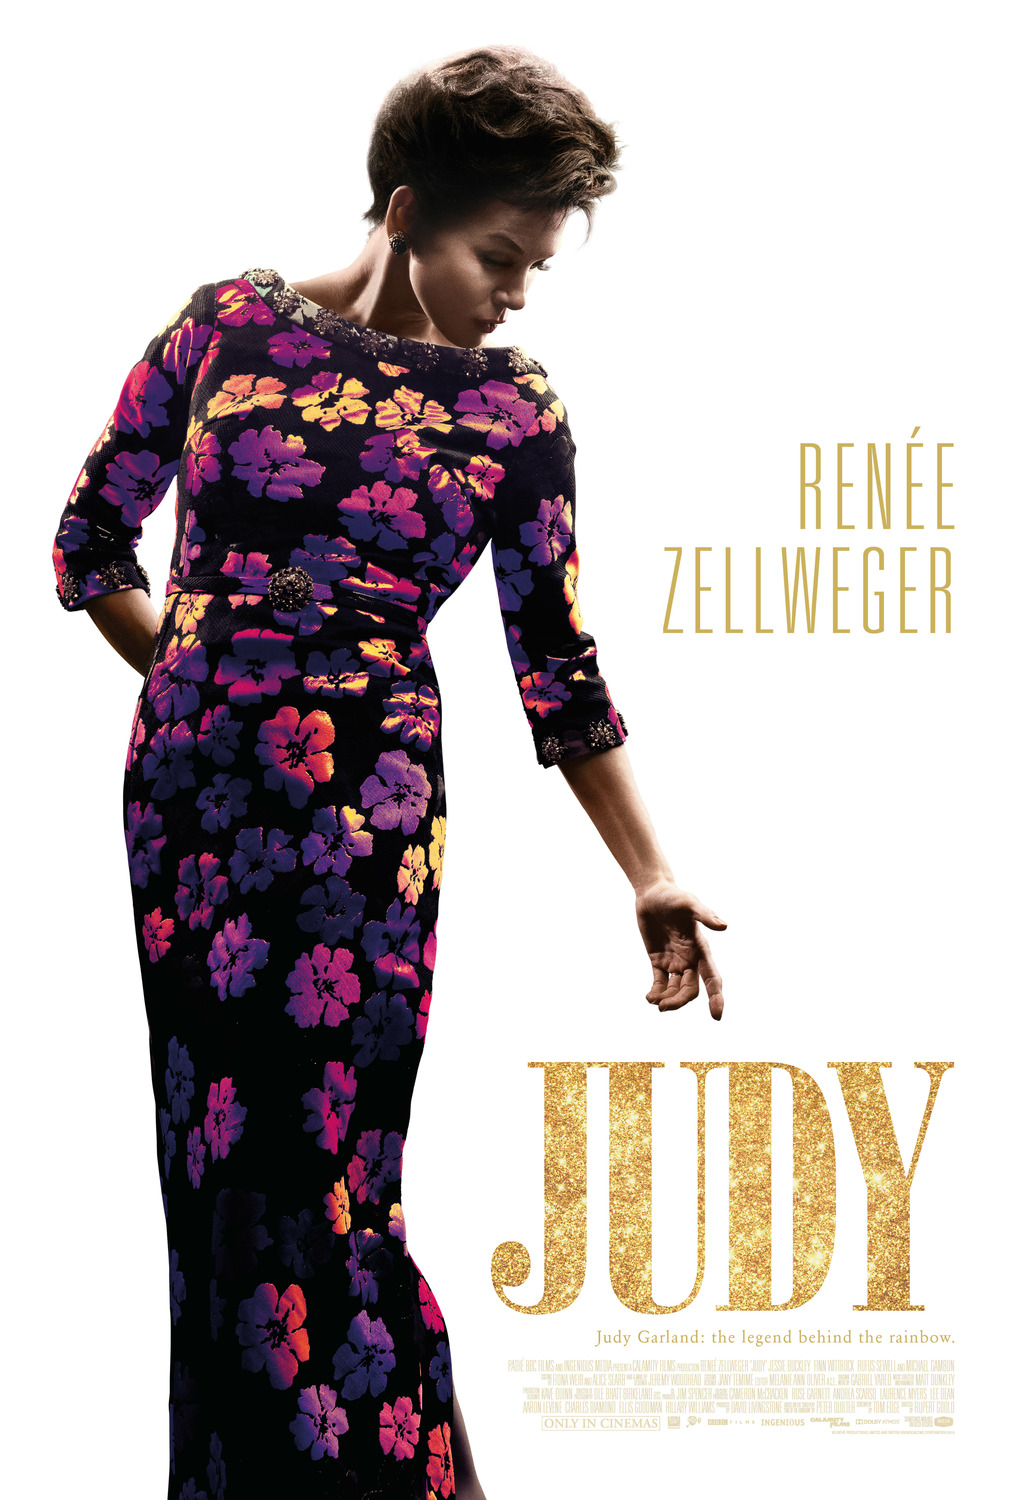 Cinema: Judy @ Midsomer Norton Town Hall | Midsomer Norton | United Kingdom